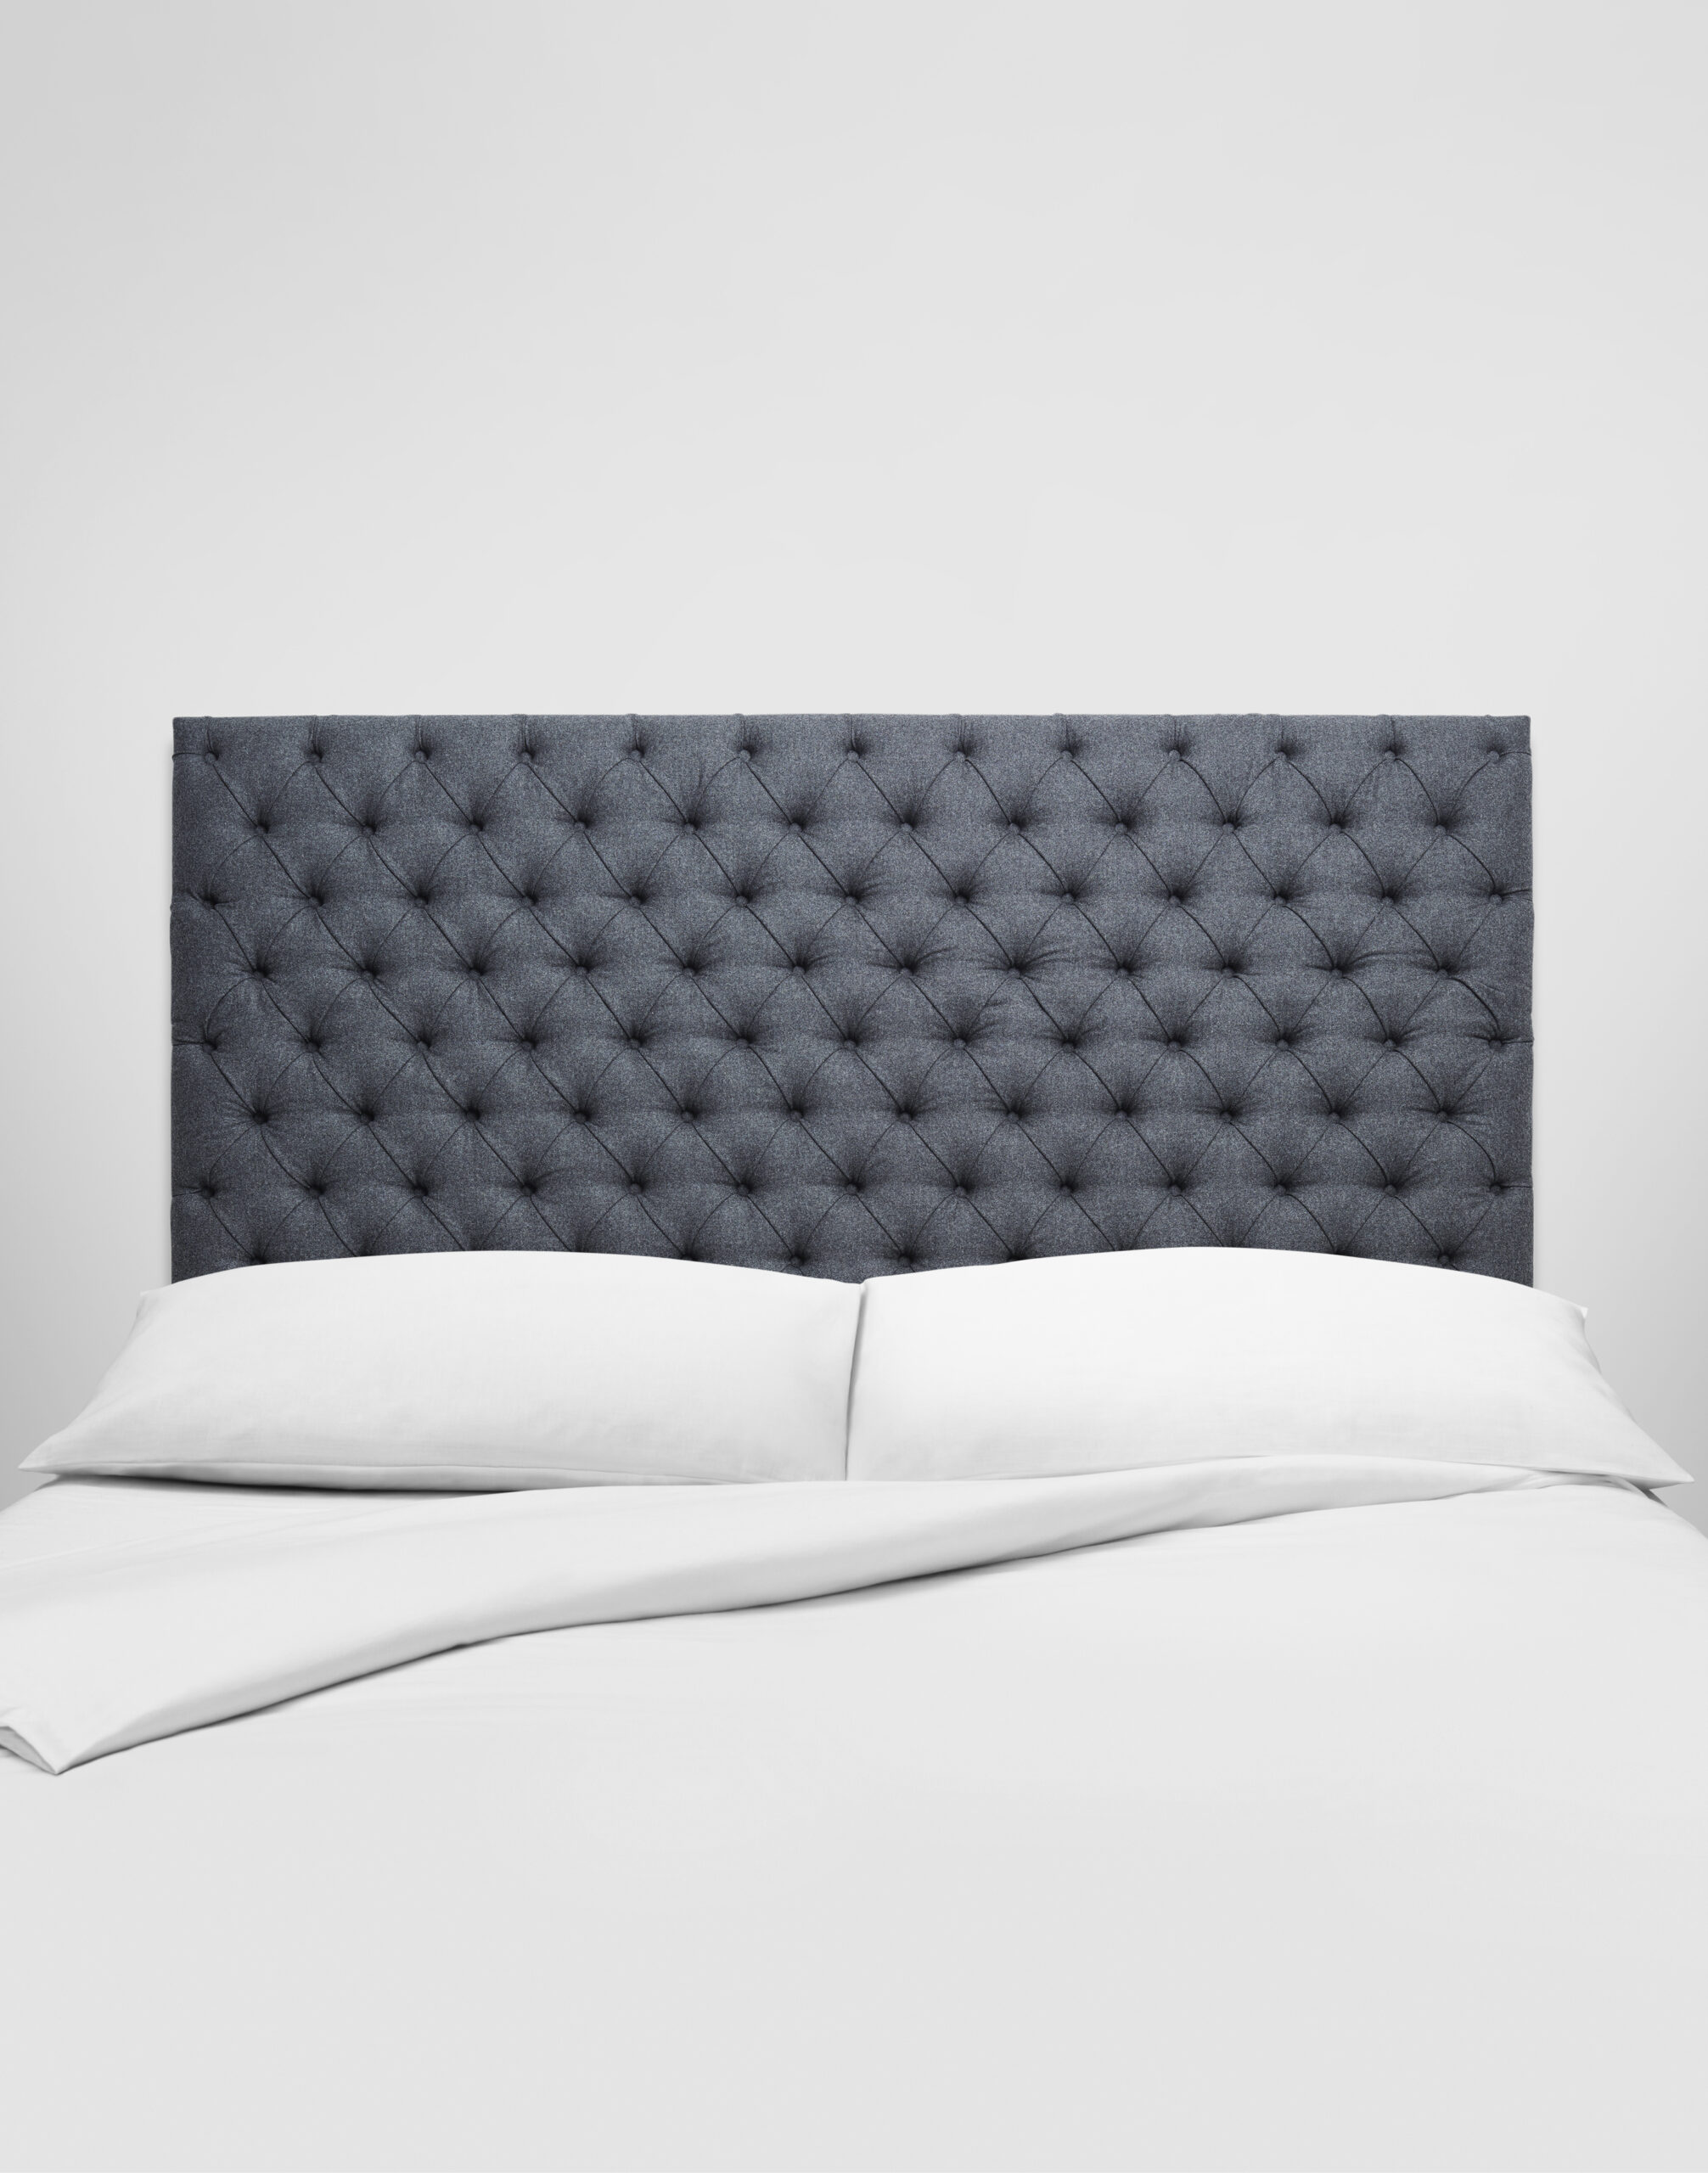 Aldo bed portrait scaled i Vigna